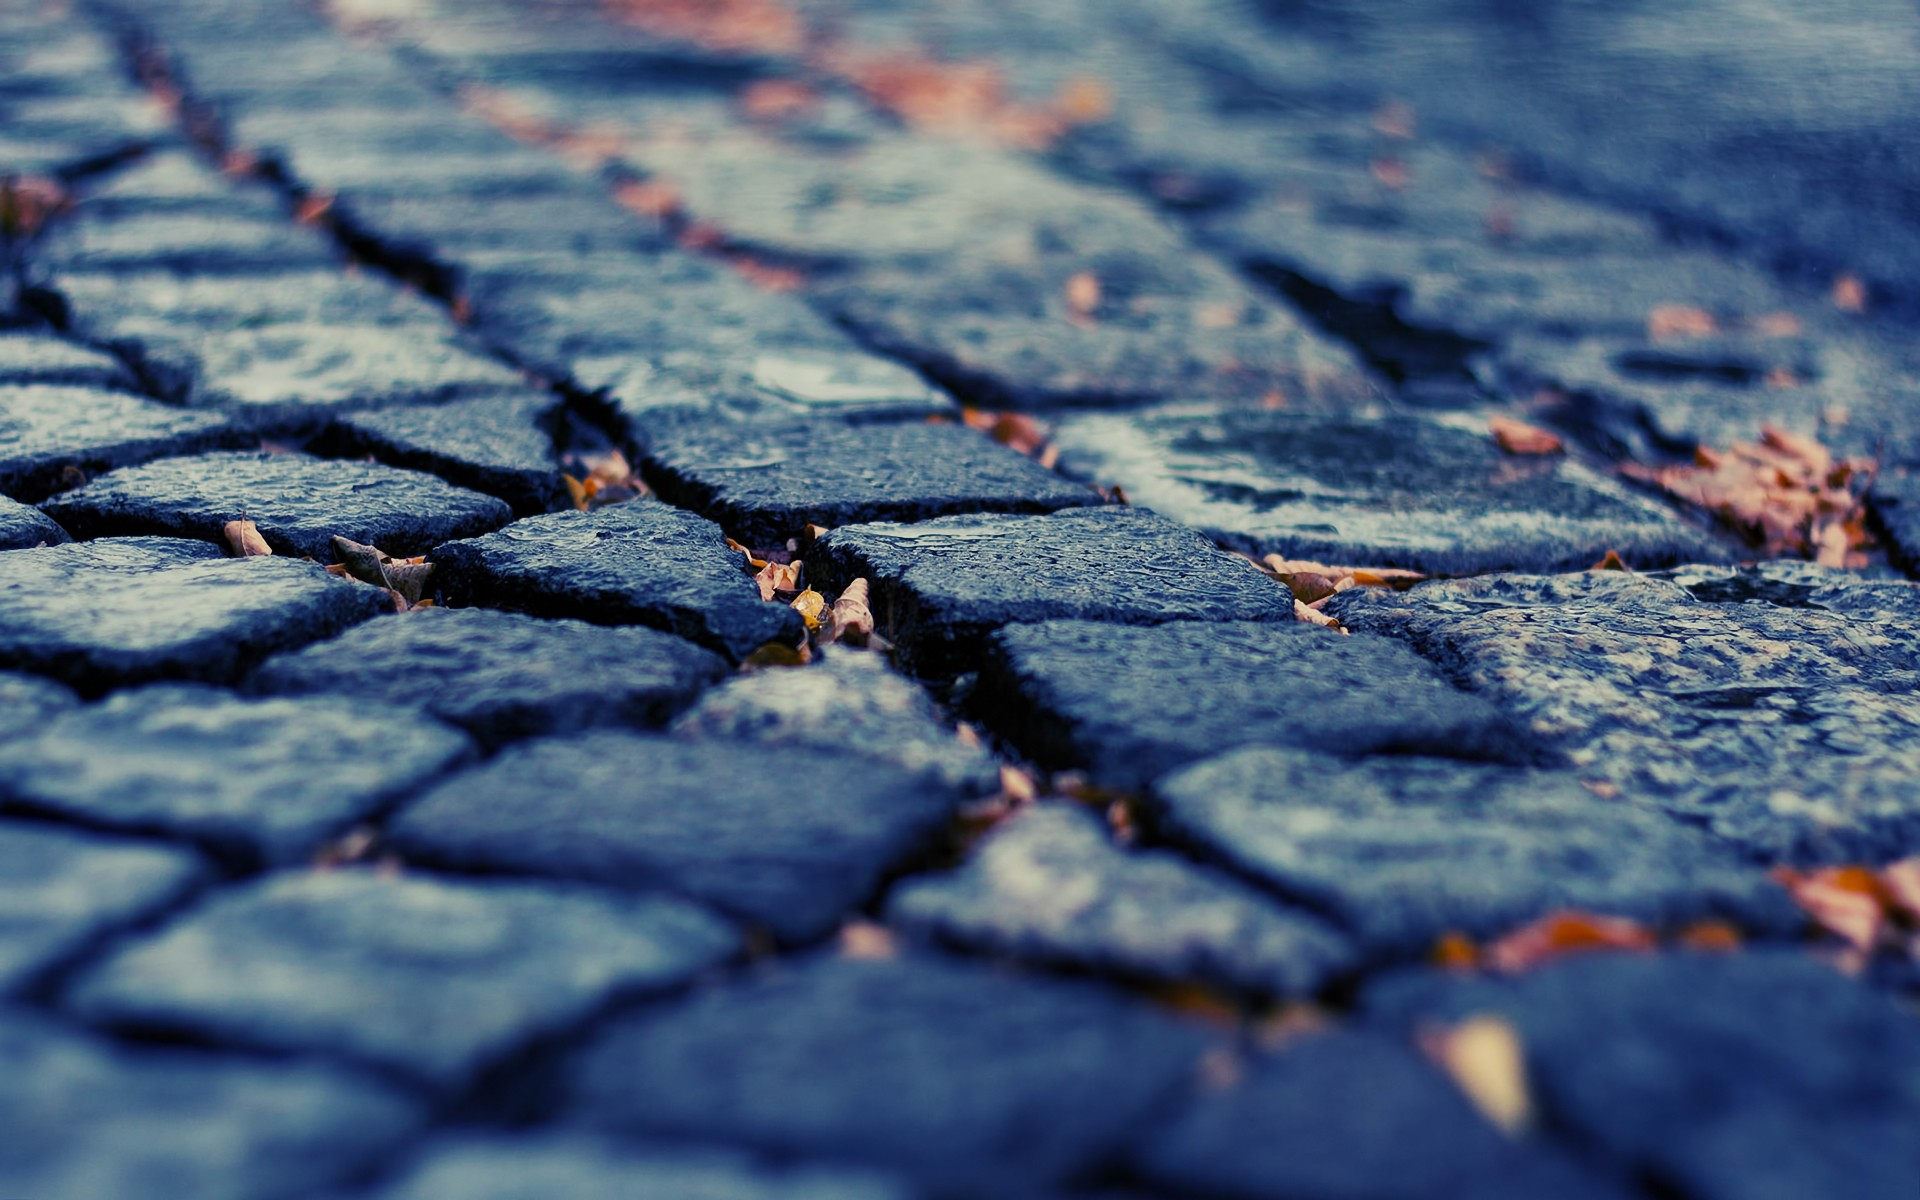 Download Wallpaper pavement depth of field cobblestones fallen leaves -15372-3